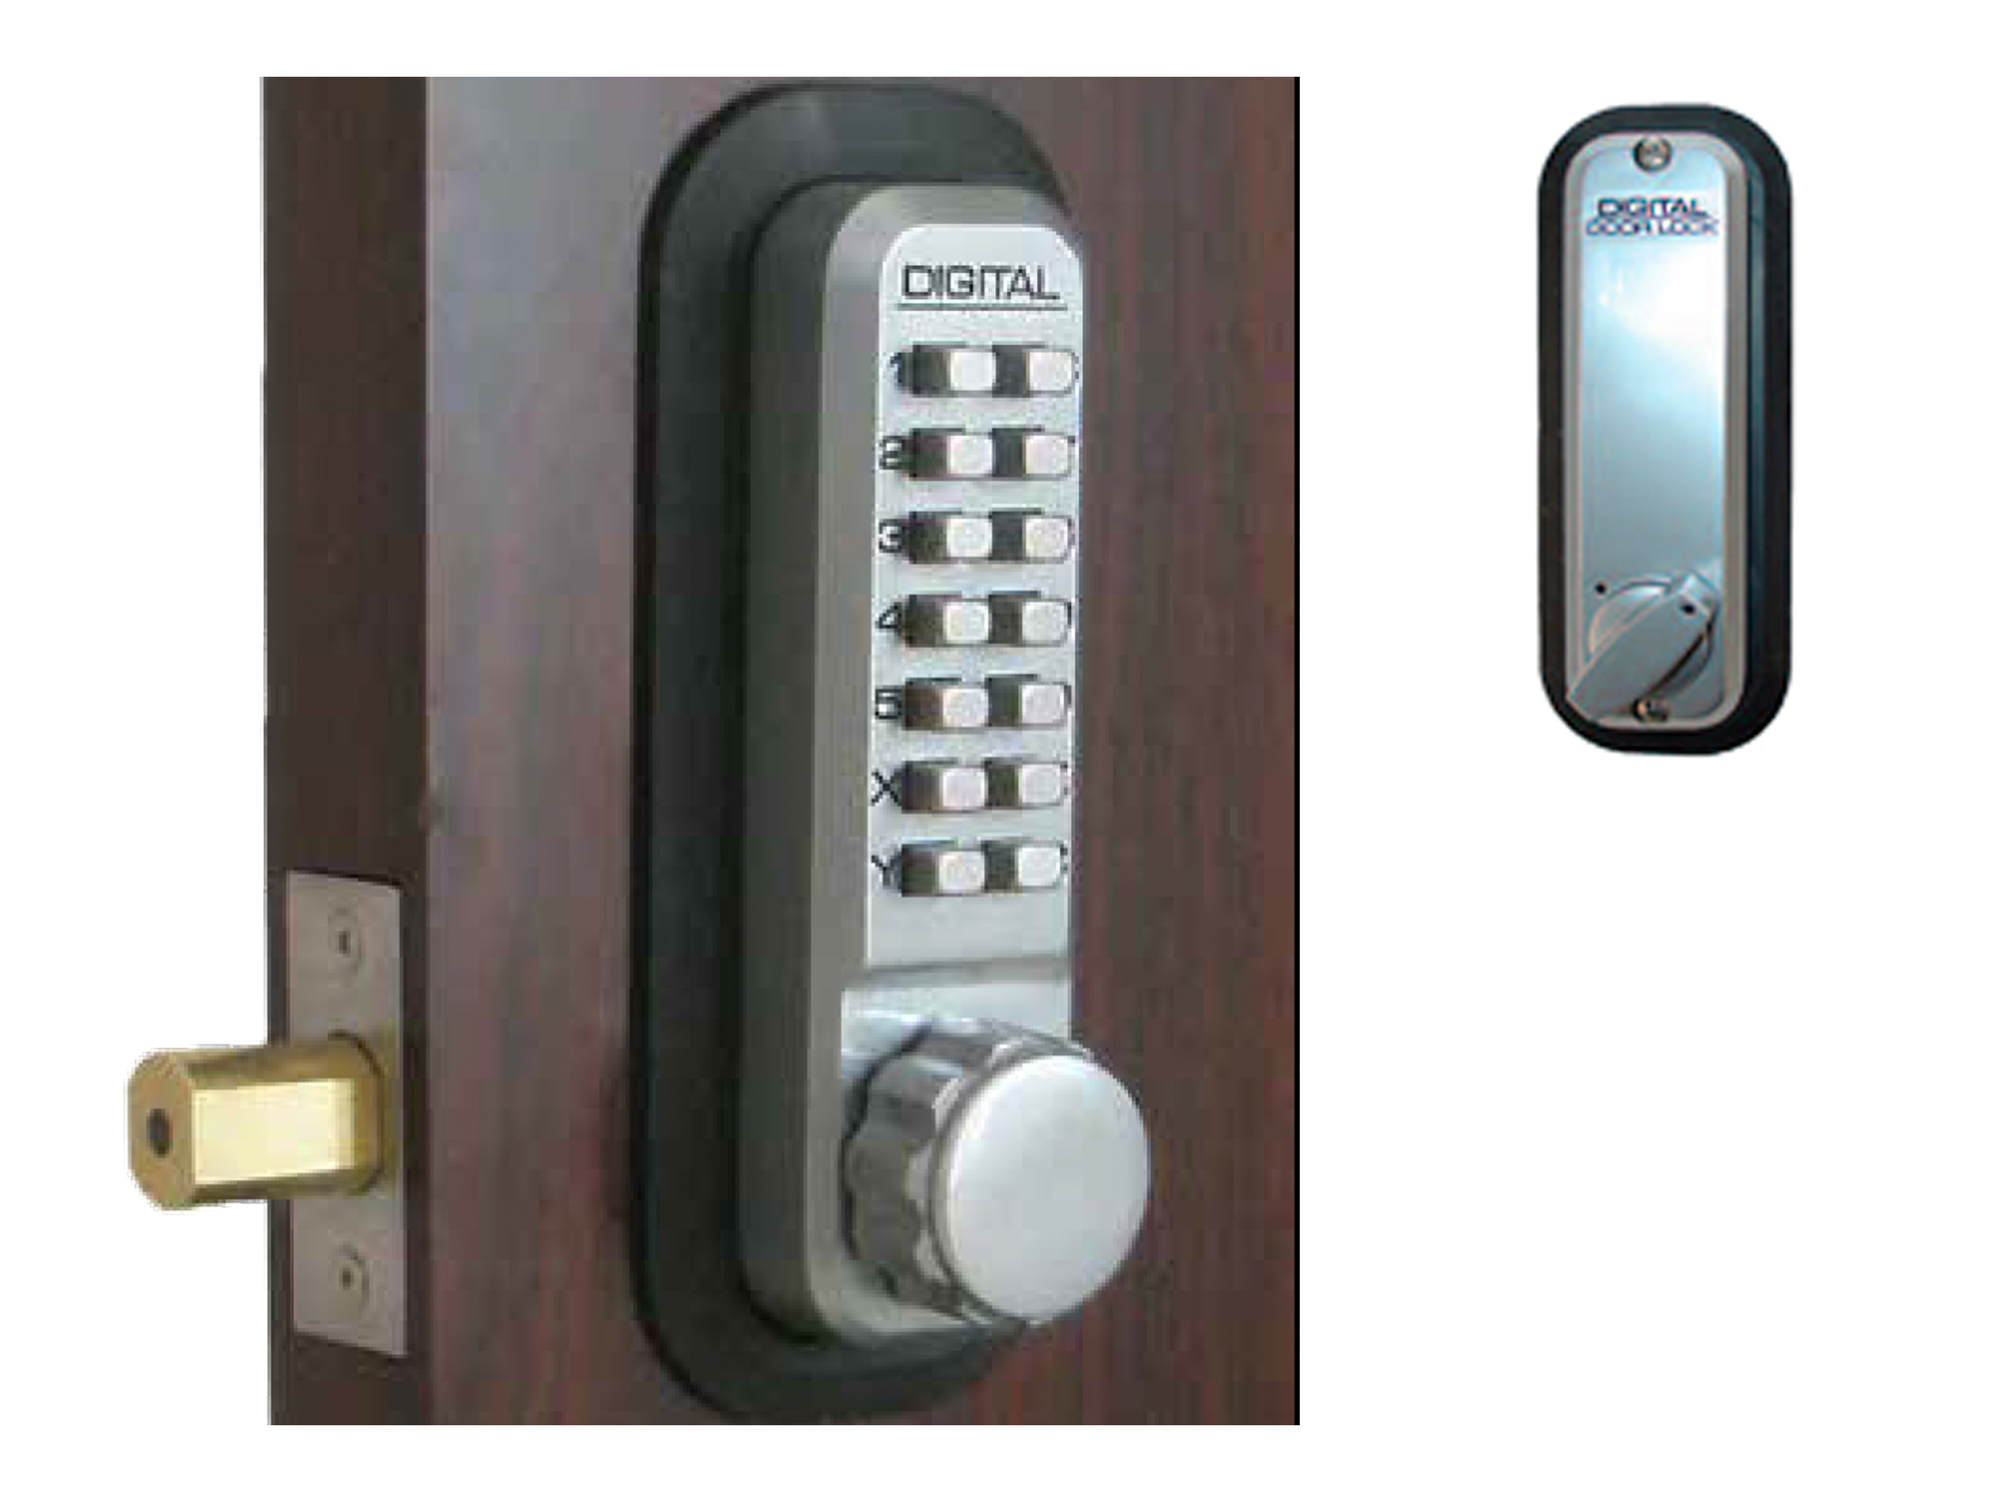 Lockey 2210 Deadbolt Keypad Lock